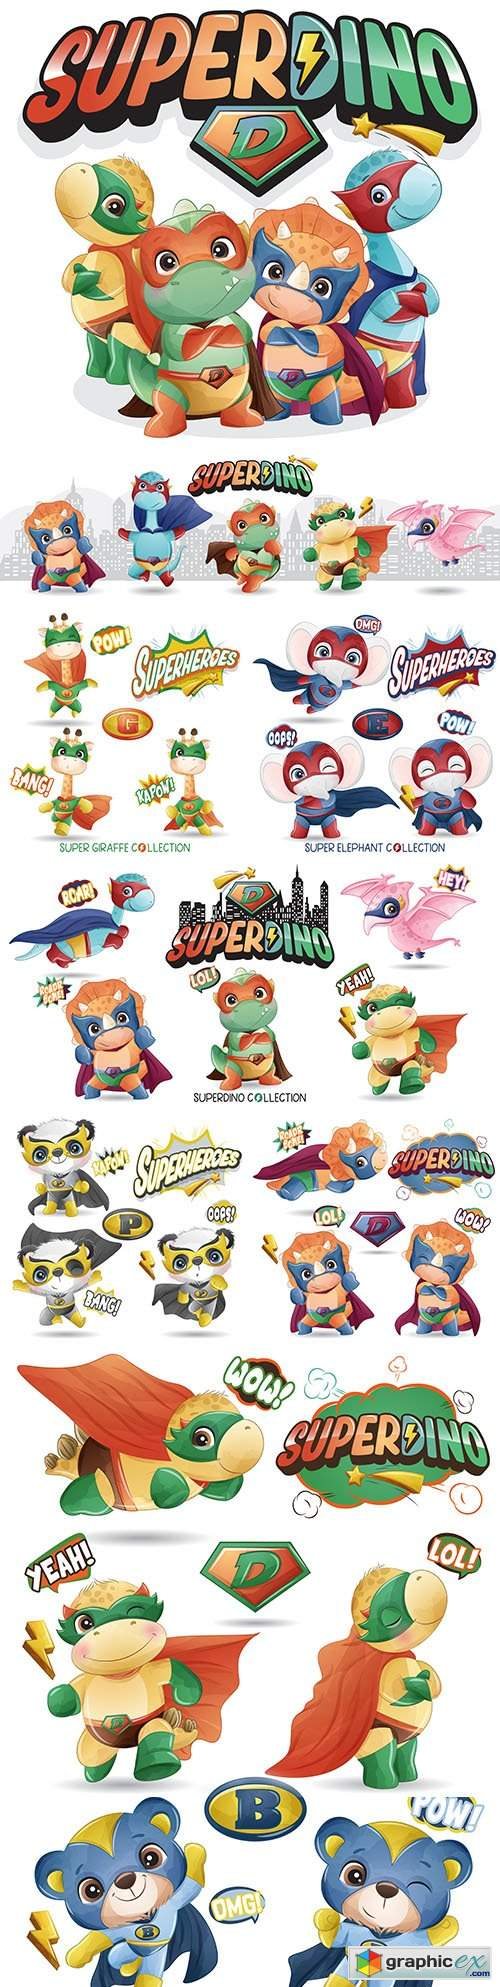 Super dinosaur and other heroes funny cartoon illustration